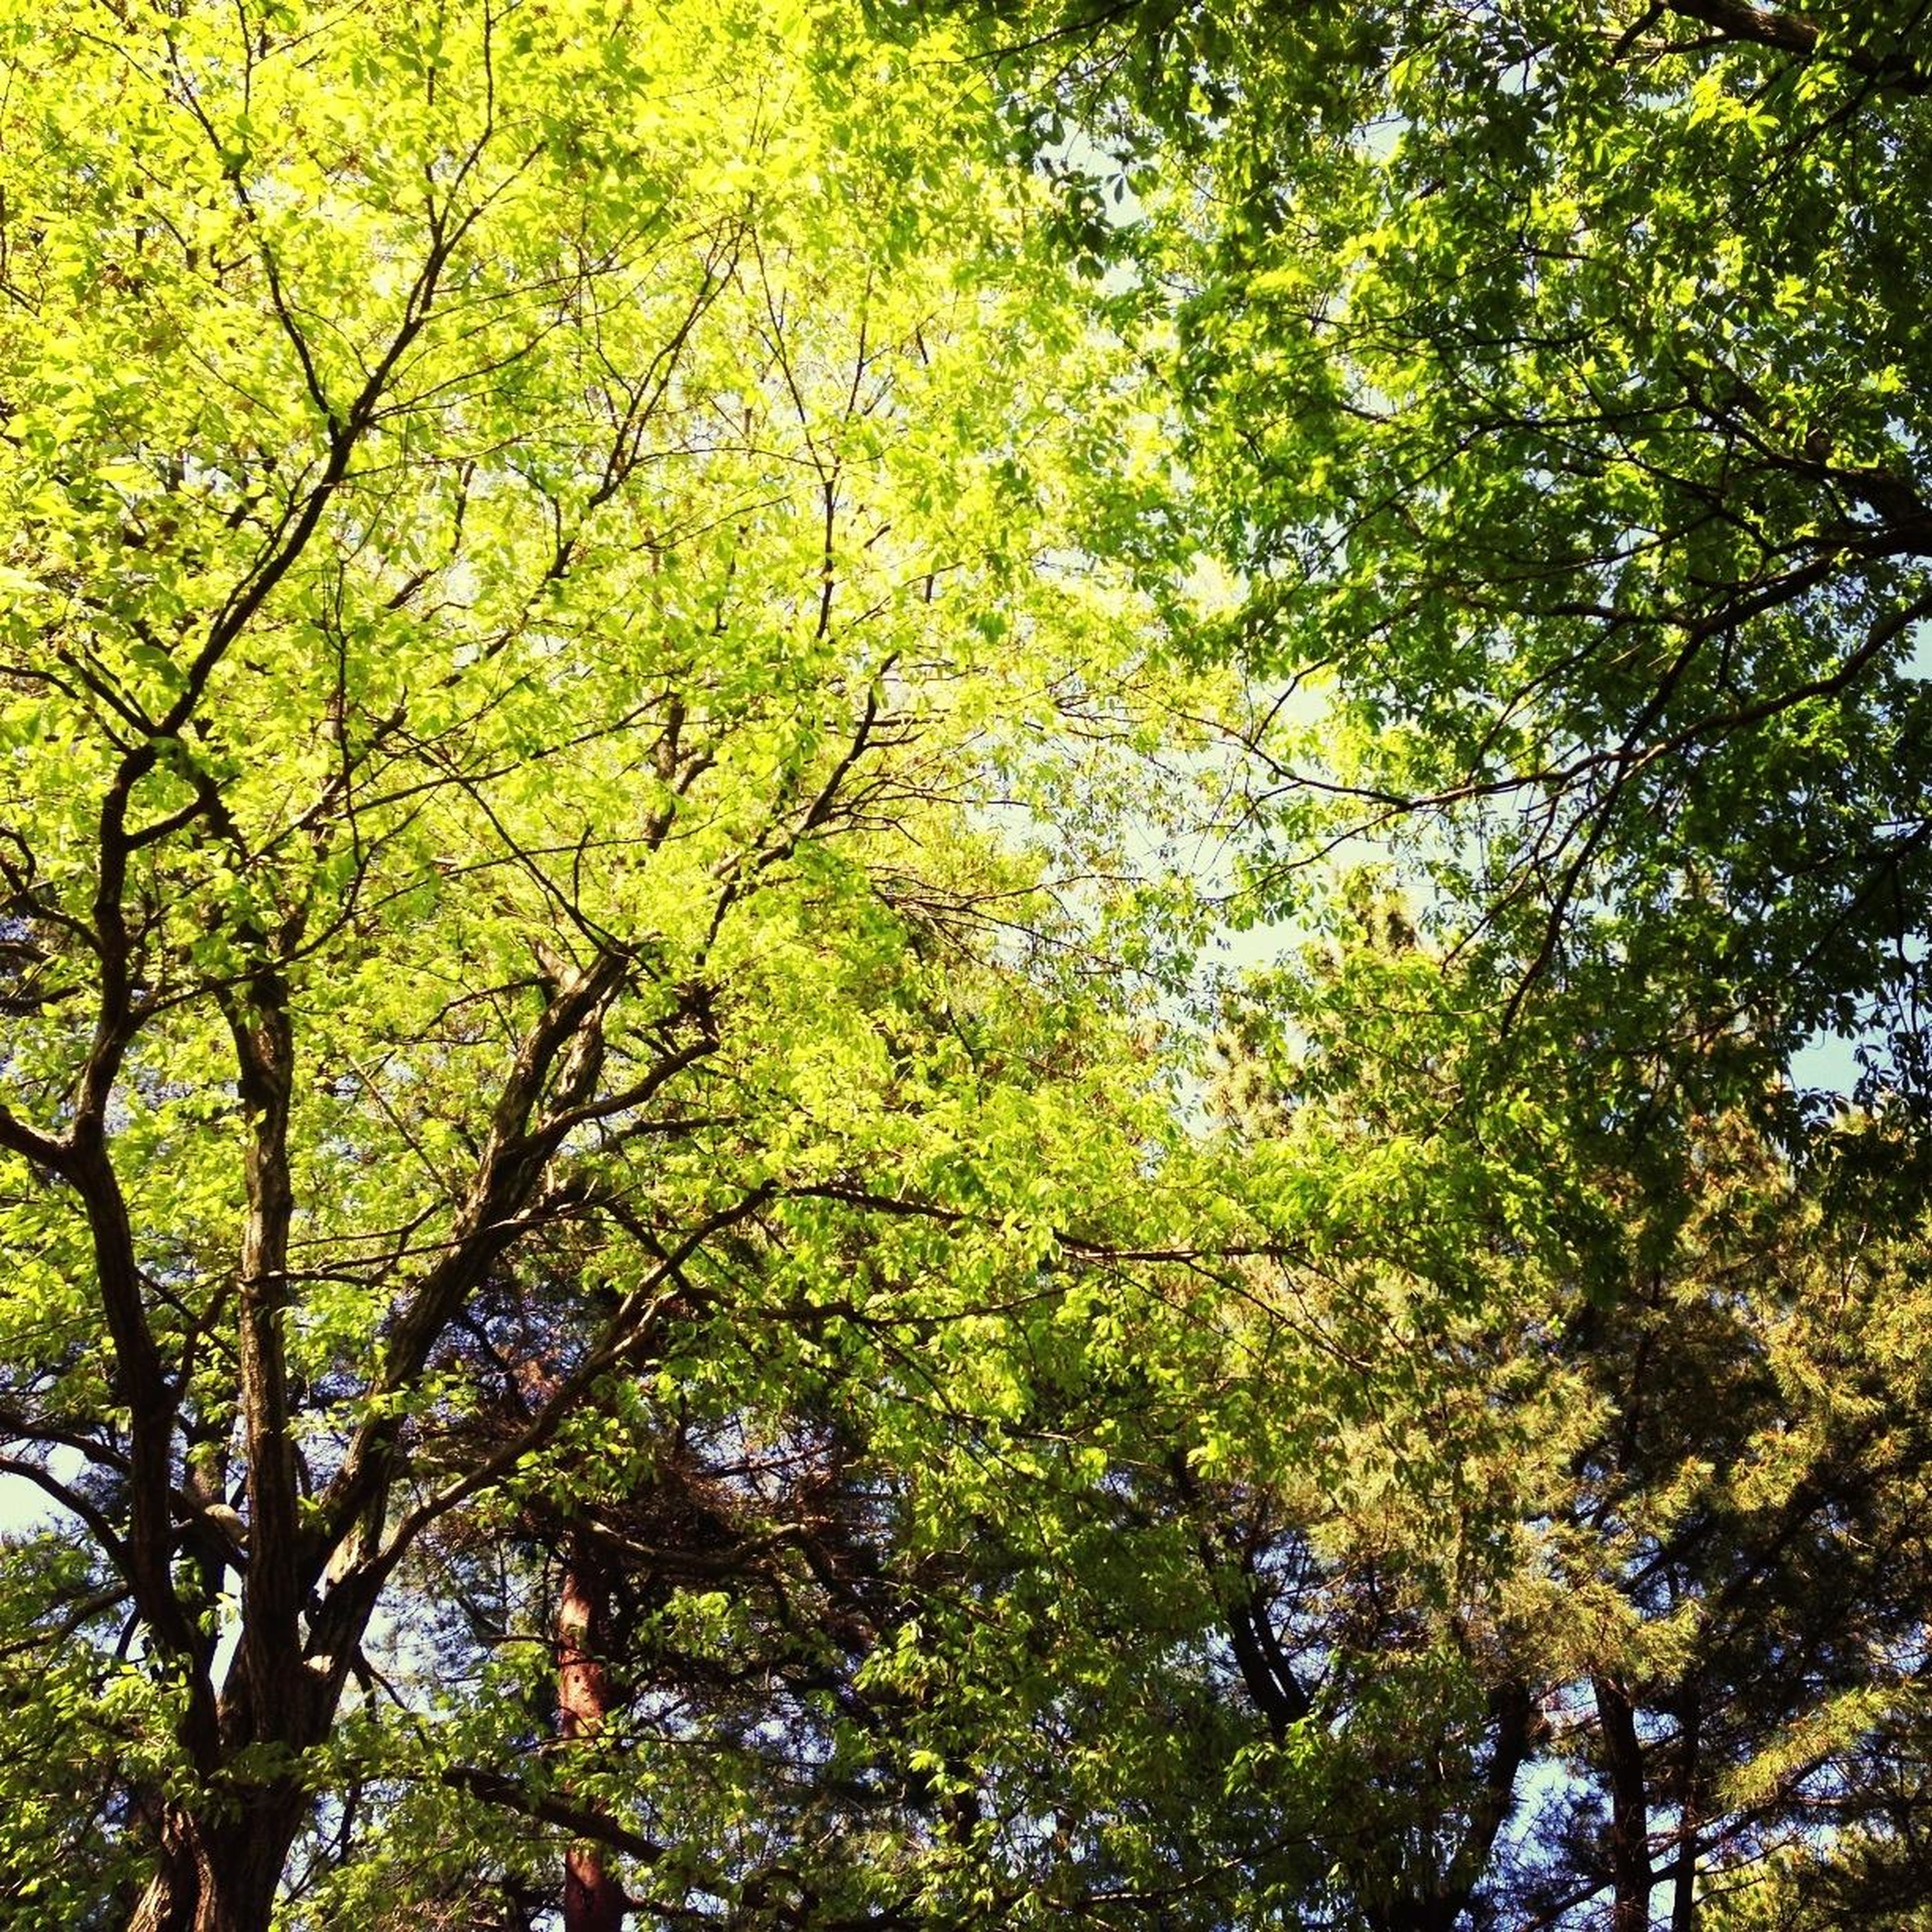 tree, branch, growth, low angle view, green color, nature, tranquility, beauty in nature, lush foliage, forest, full frame, scenics, backgrounds, tranquil scene, leaf, day, green, outdoors, no people, sunlight